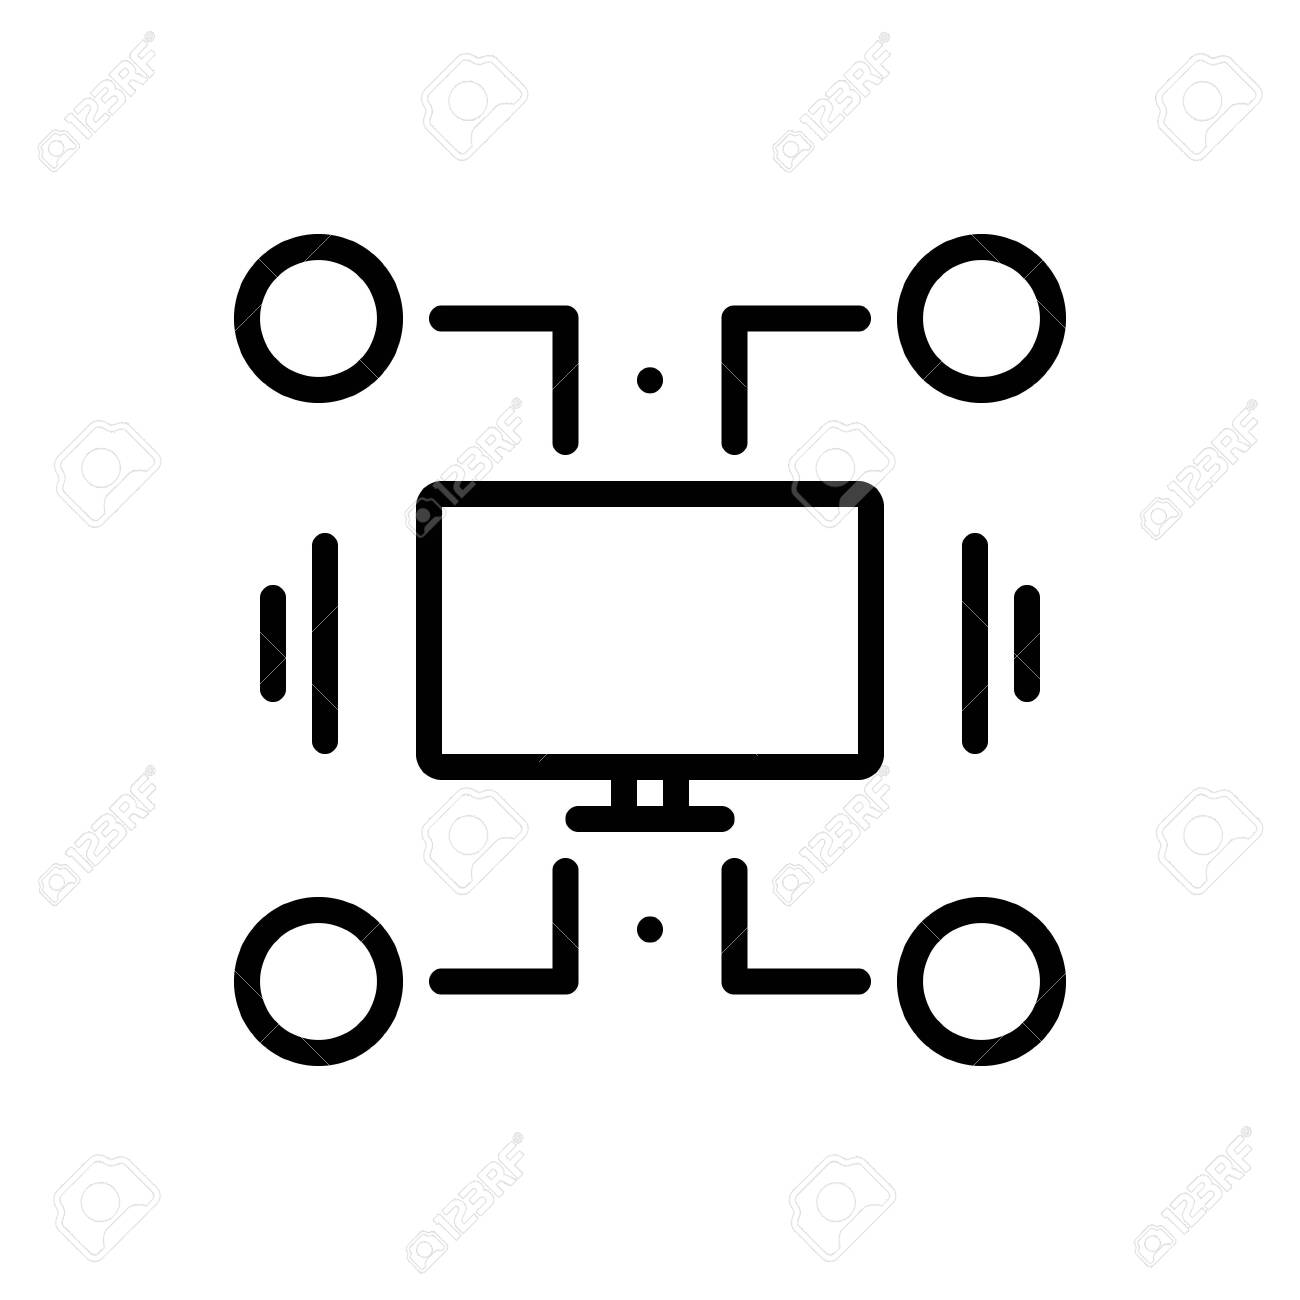 Icon for cobol,application - 129460990